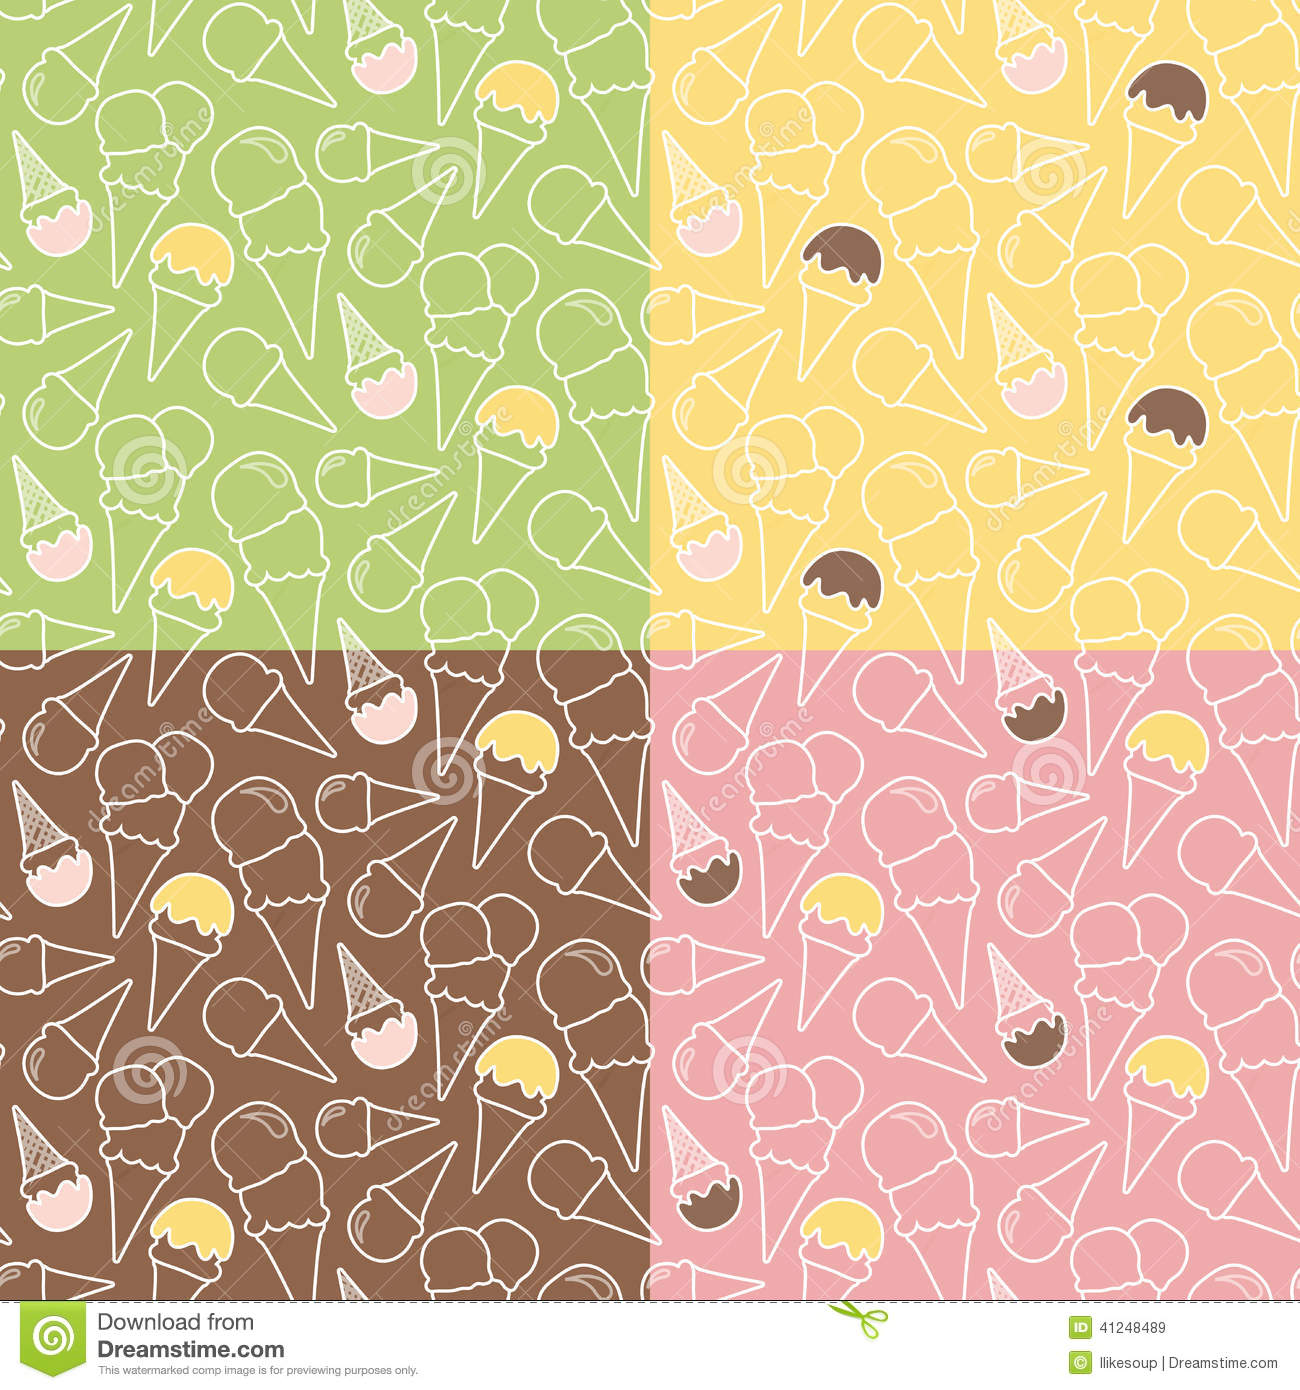 Pistachio Ice Cream Wallpapers High Quality: Set Of Four Summer Ice Cream Patterns On Different